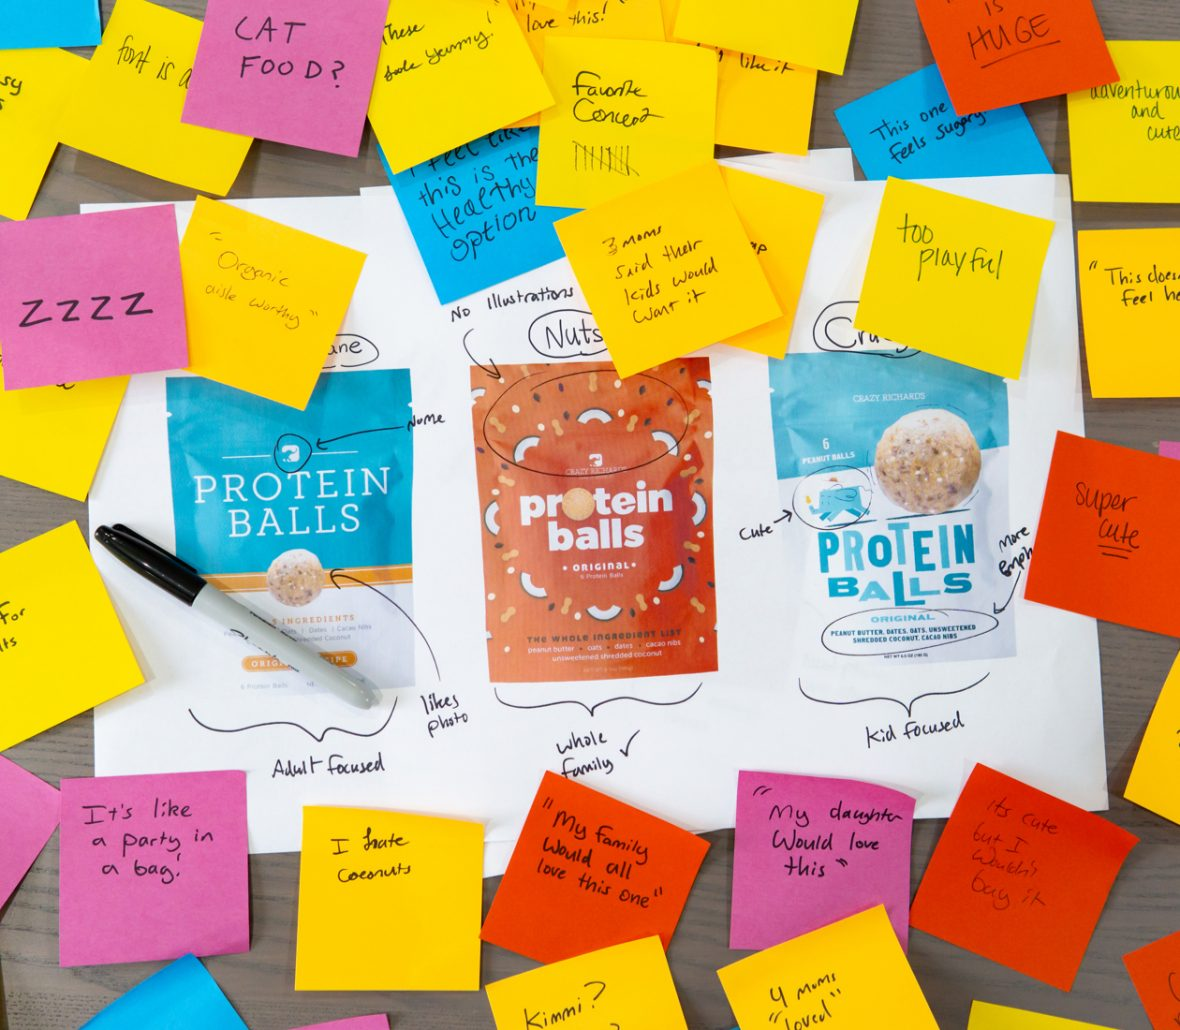 3 concepts with post it notes attached around them